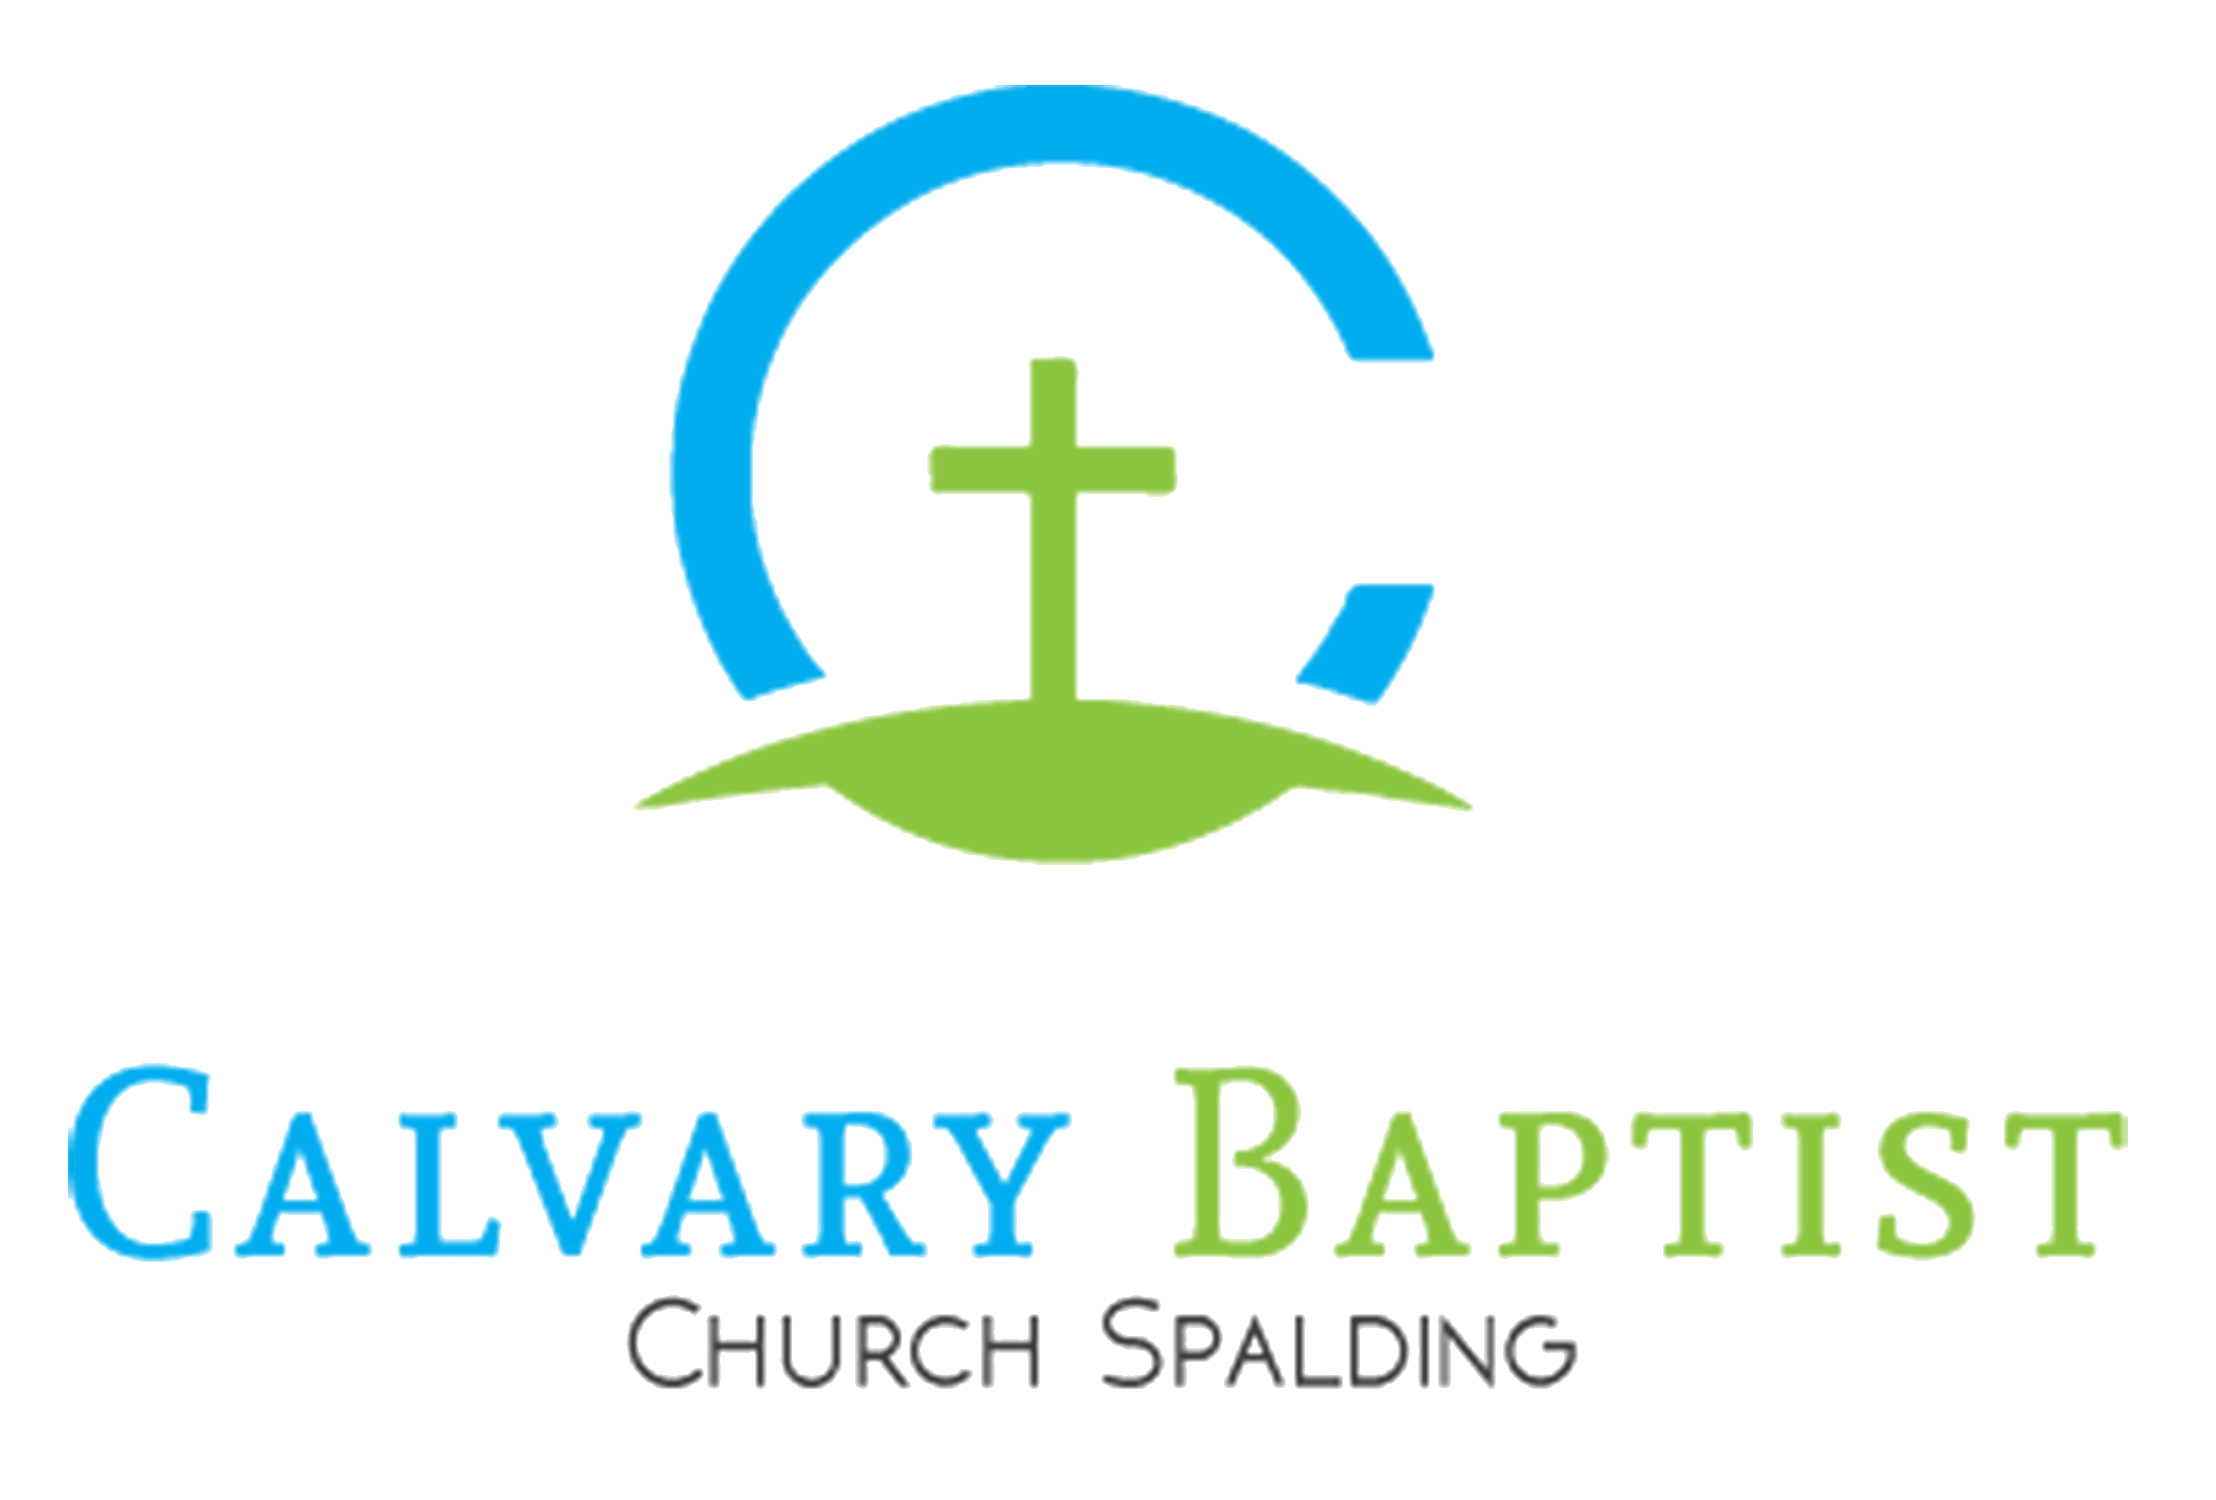 Calvary Baptist Church Spalding